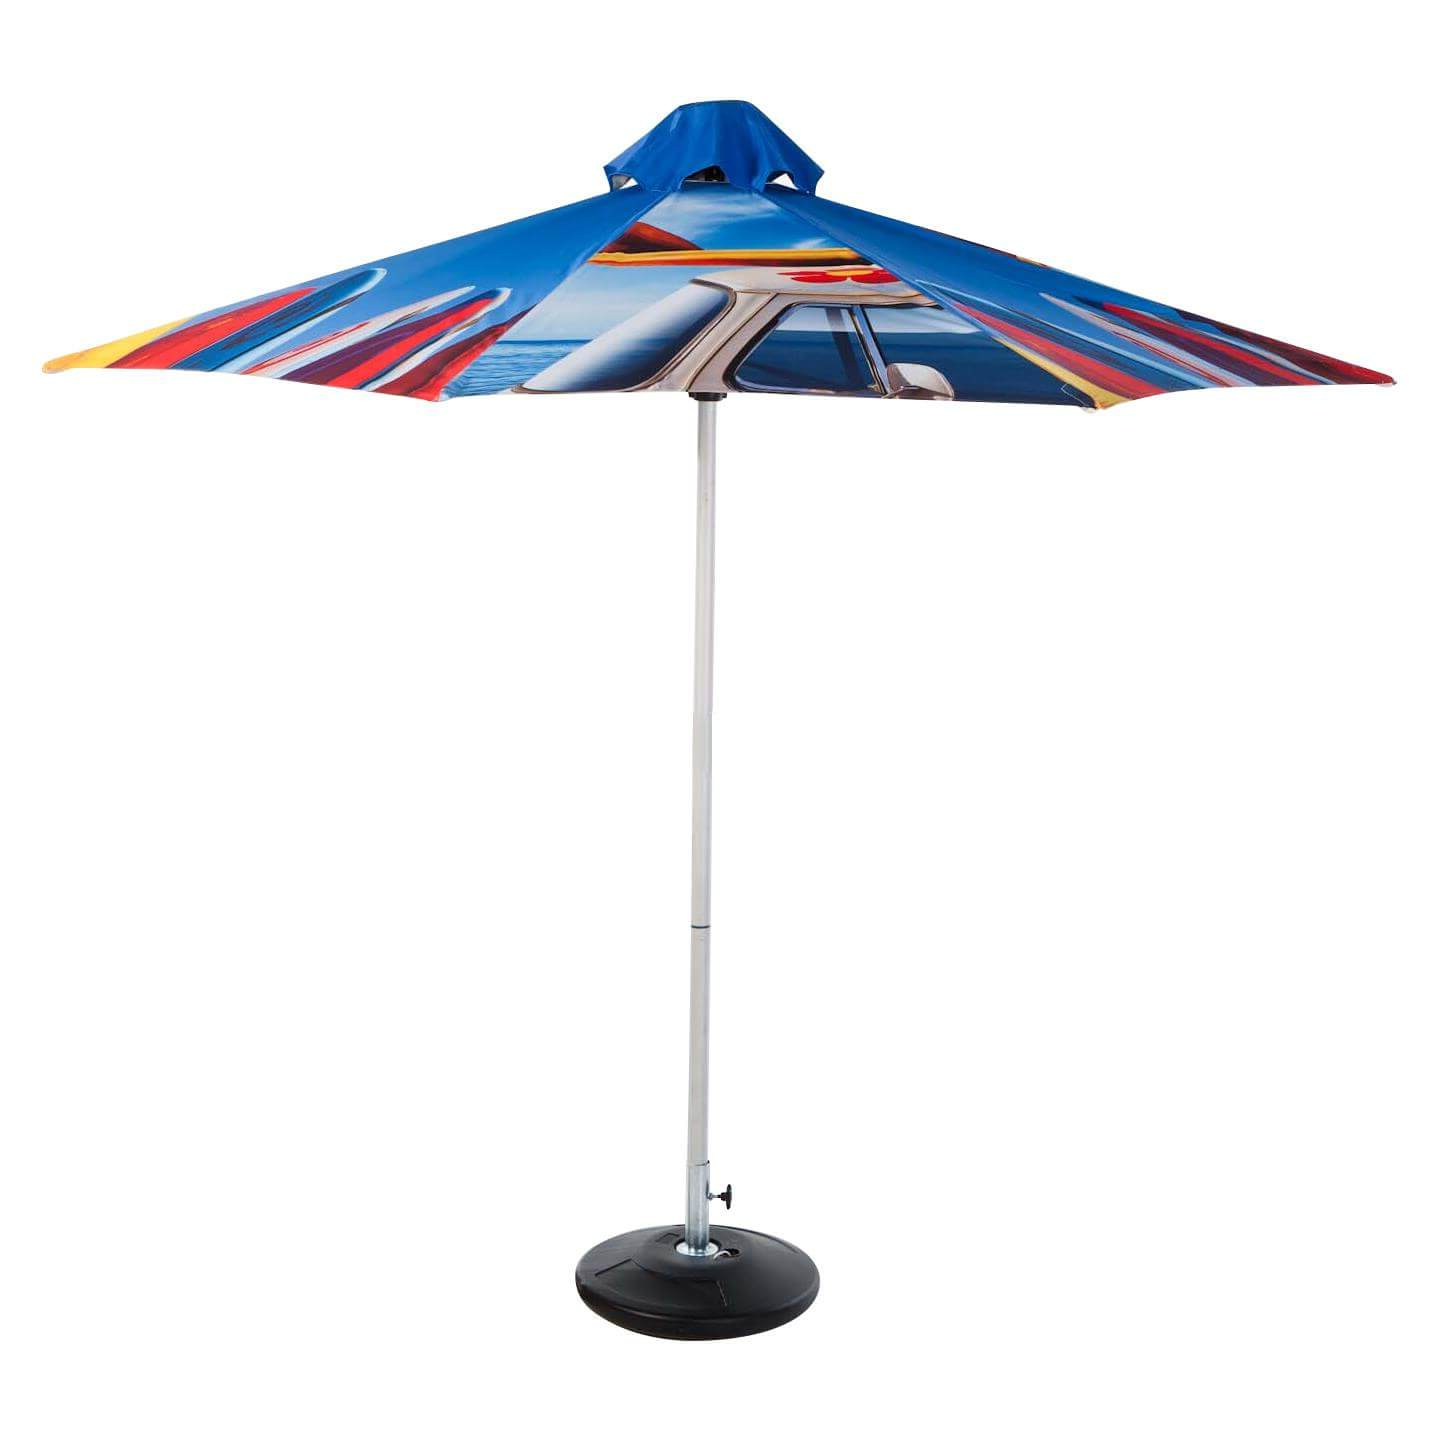 Widely Used Market Umbrellas For Market Umbrellas – Zodiac Event Displays (View 20 of 20)